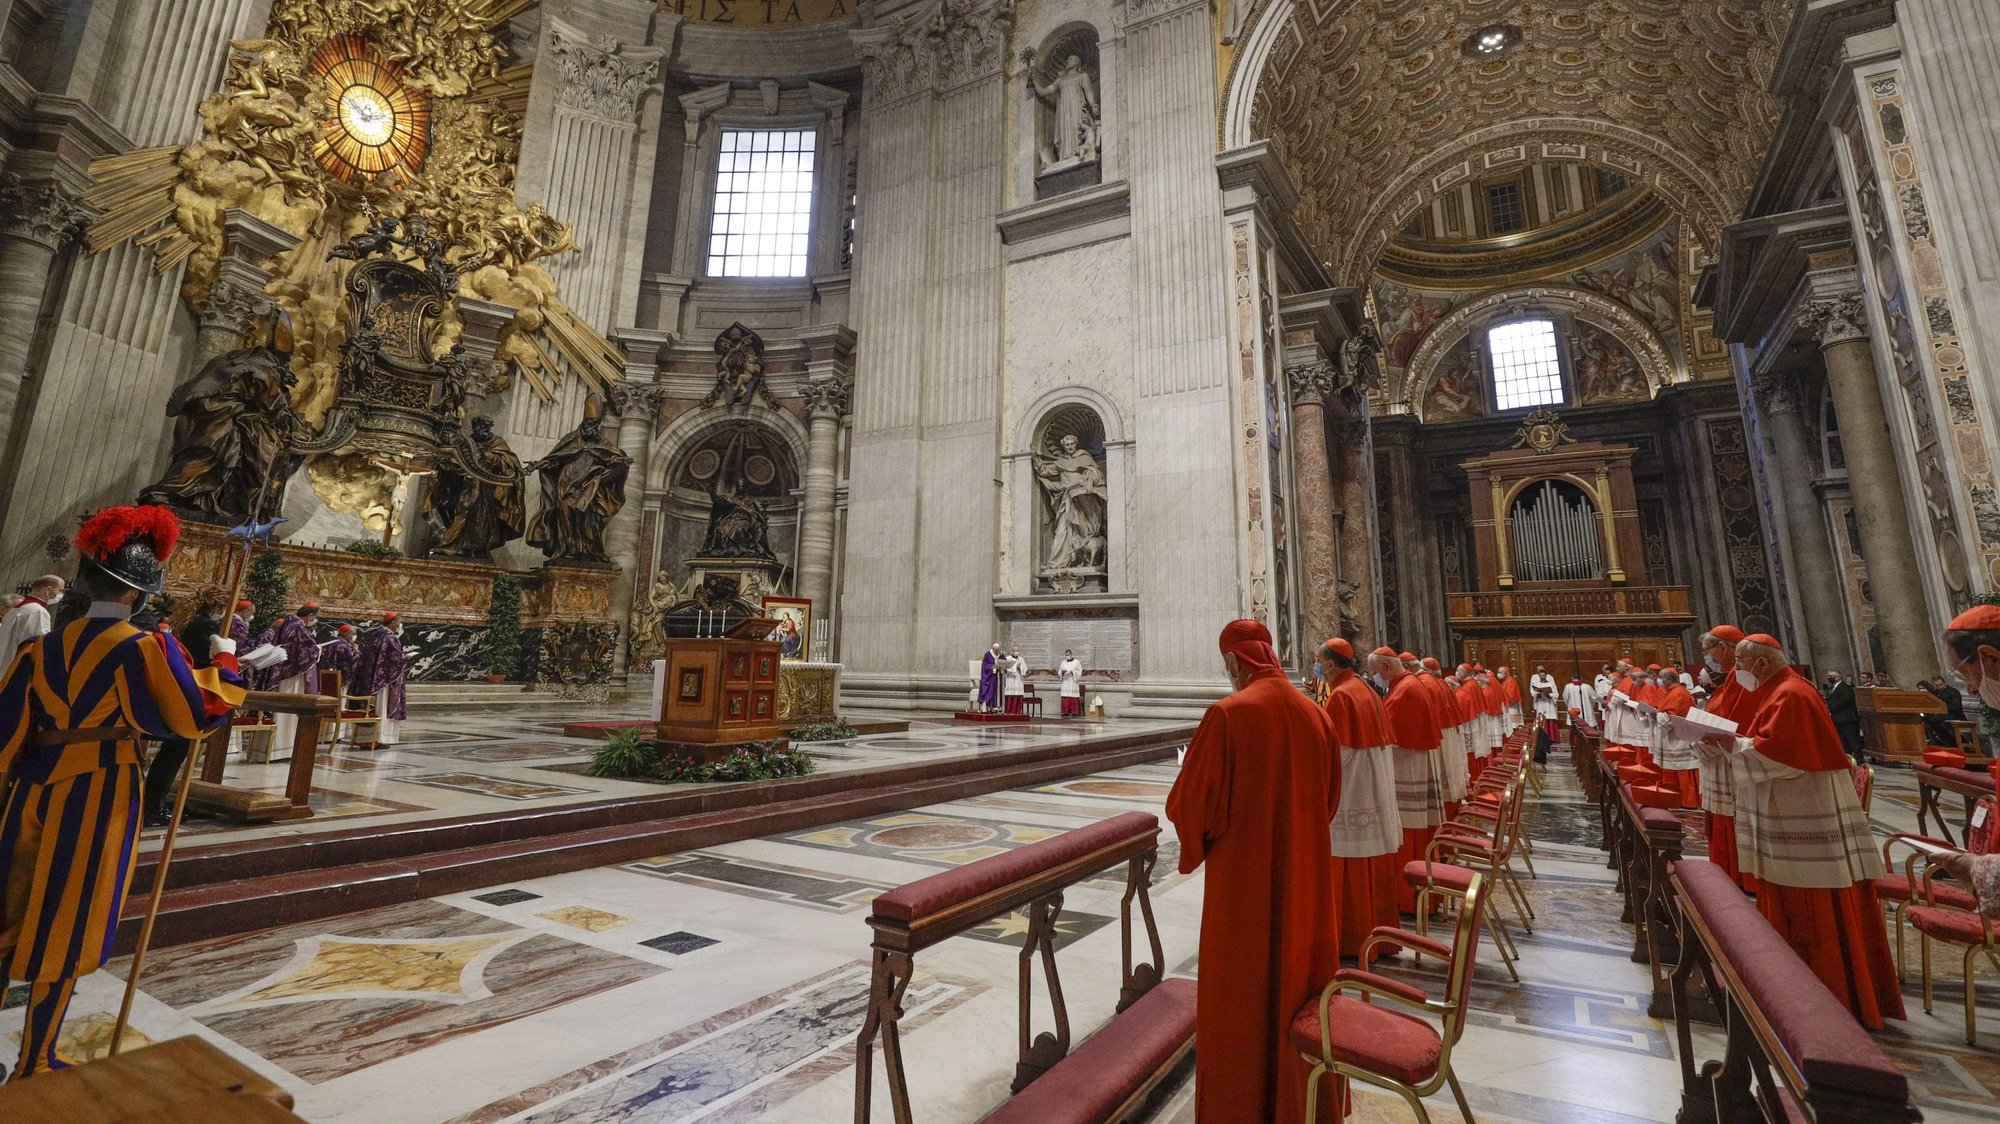 epa08850233 Pope Francis (C) celebrates a holy Mass the day after a Consistory where he raised 13 new cardinals to the highest rank in the Catholic hierarchy, at St. Peter's Basilica, Vatican City, 29 November 2020.  EPA/GREGORIO BORGIA / POOL